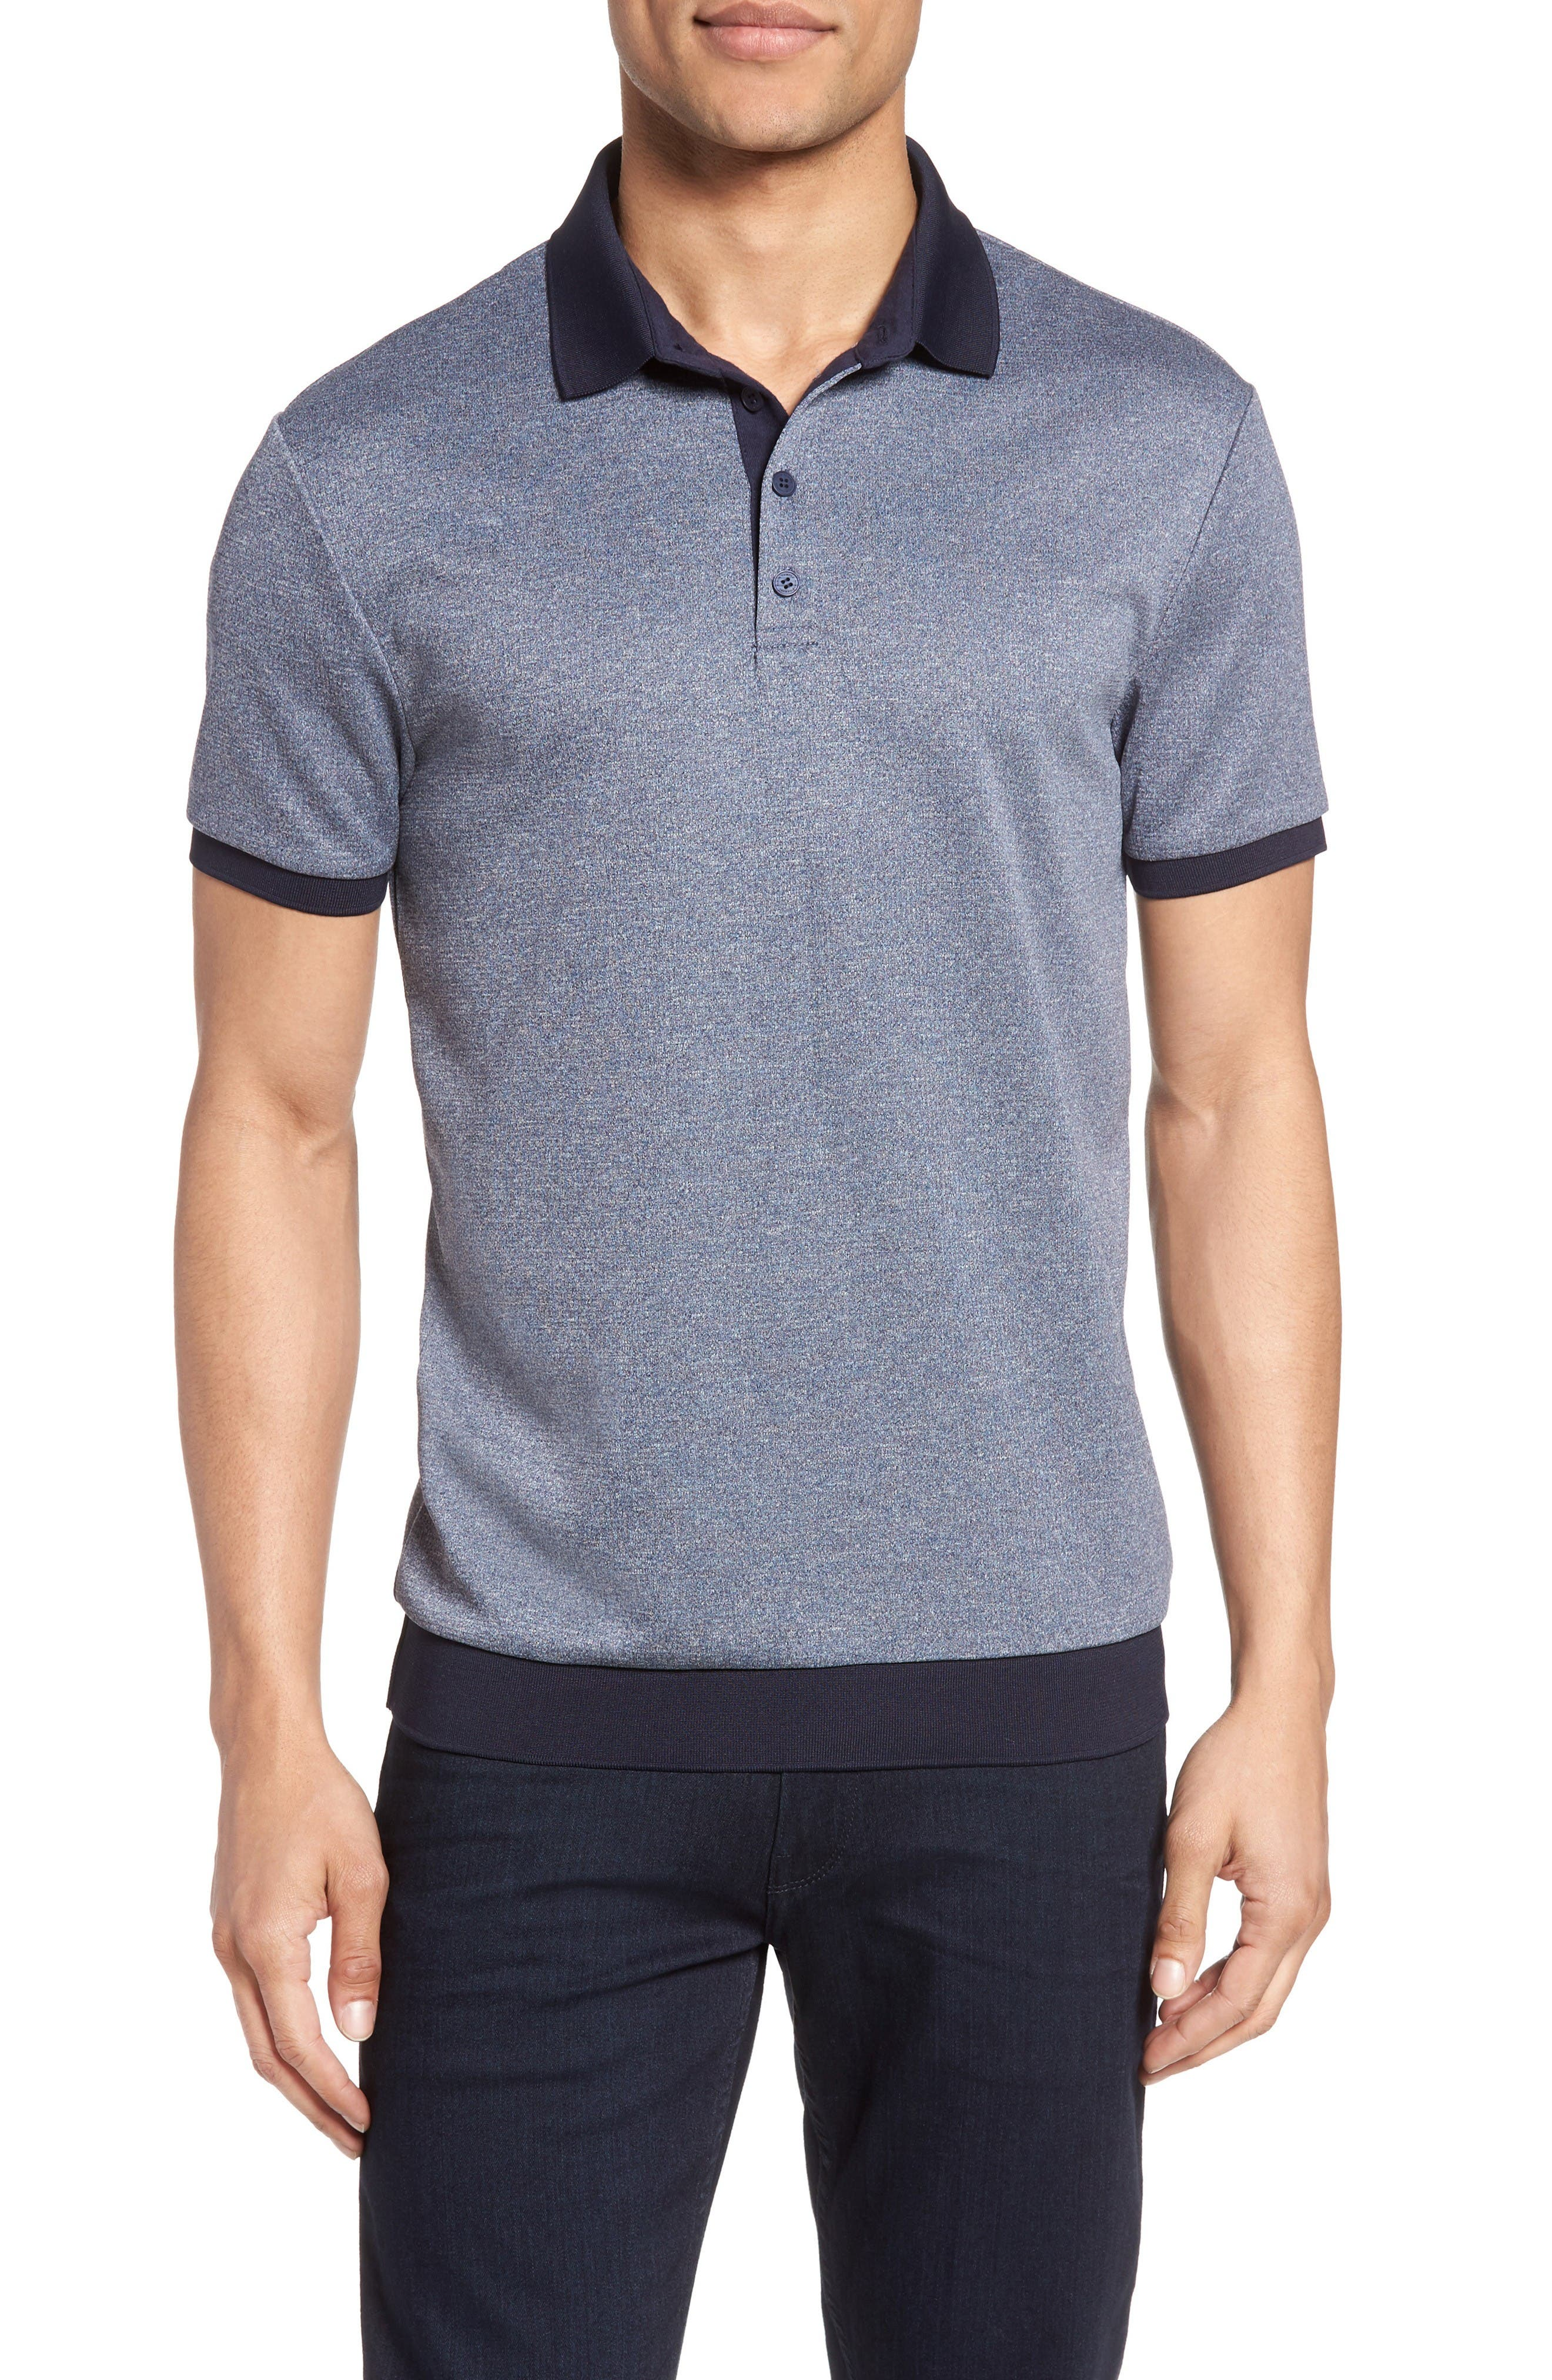 Vince Camuto Contrast Trim Knit Polo